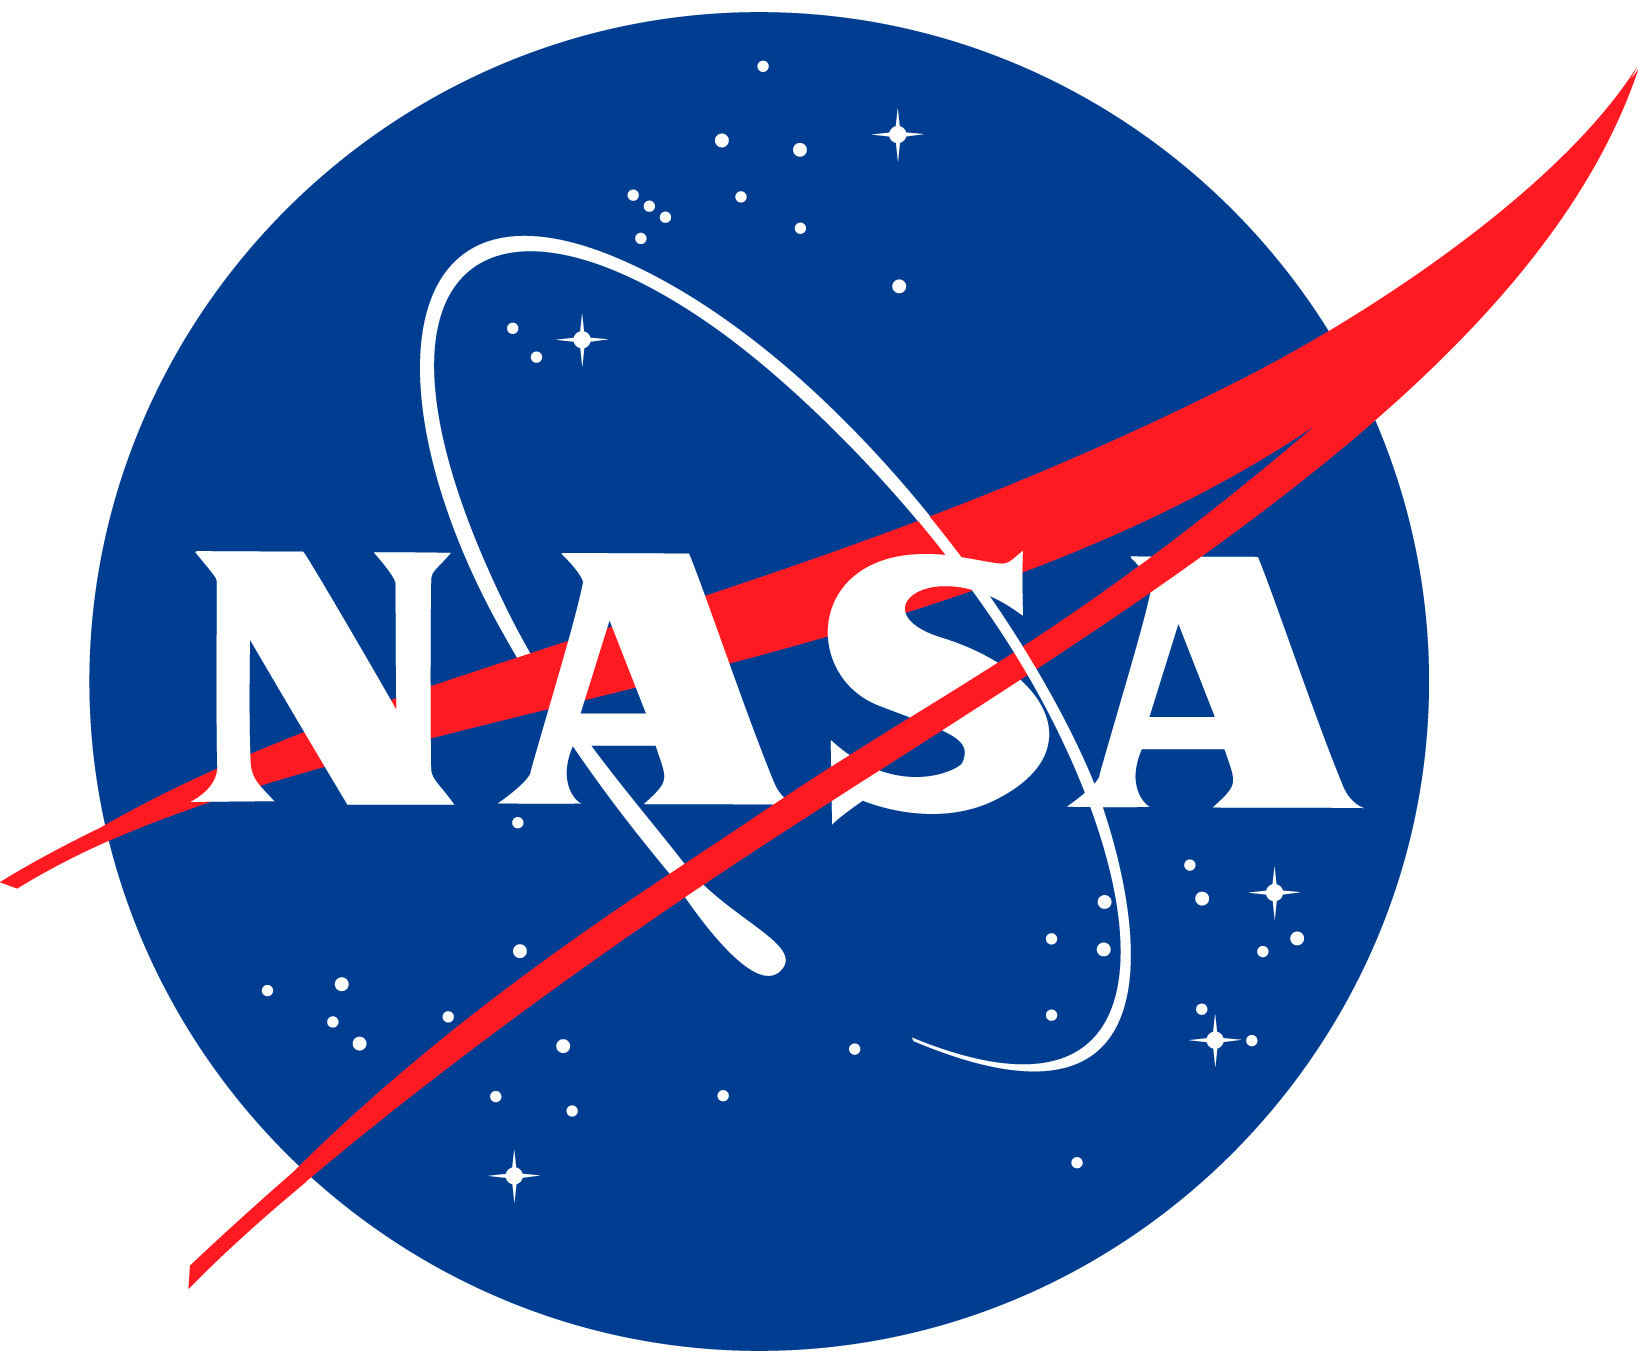 nasa.gov mission - photo #29